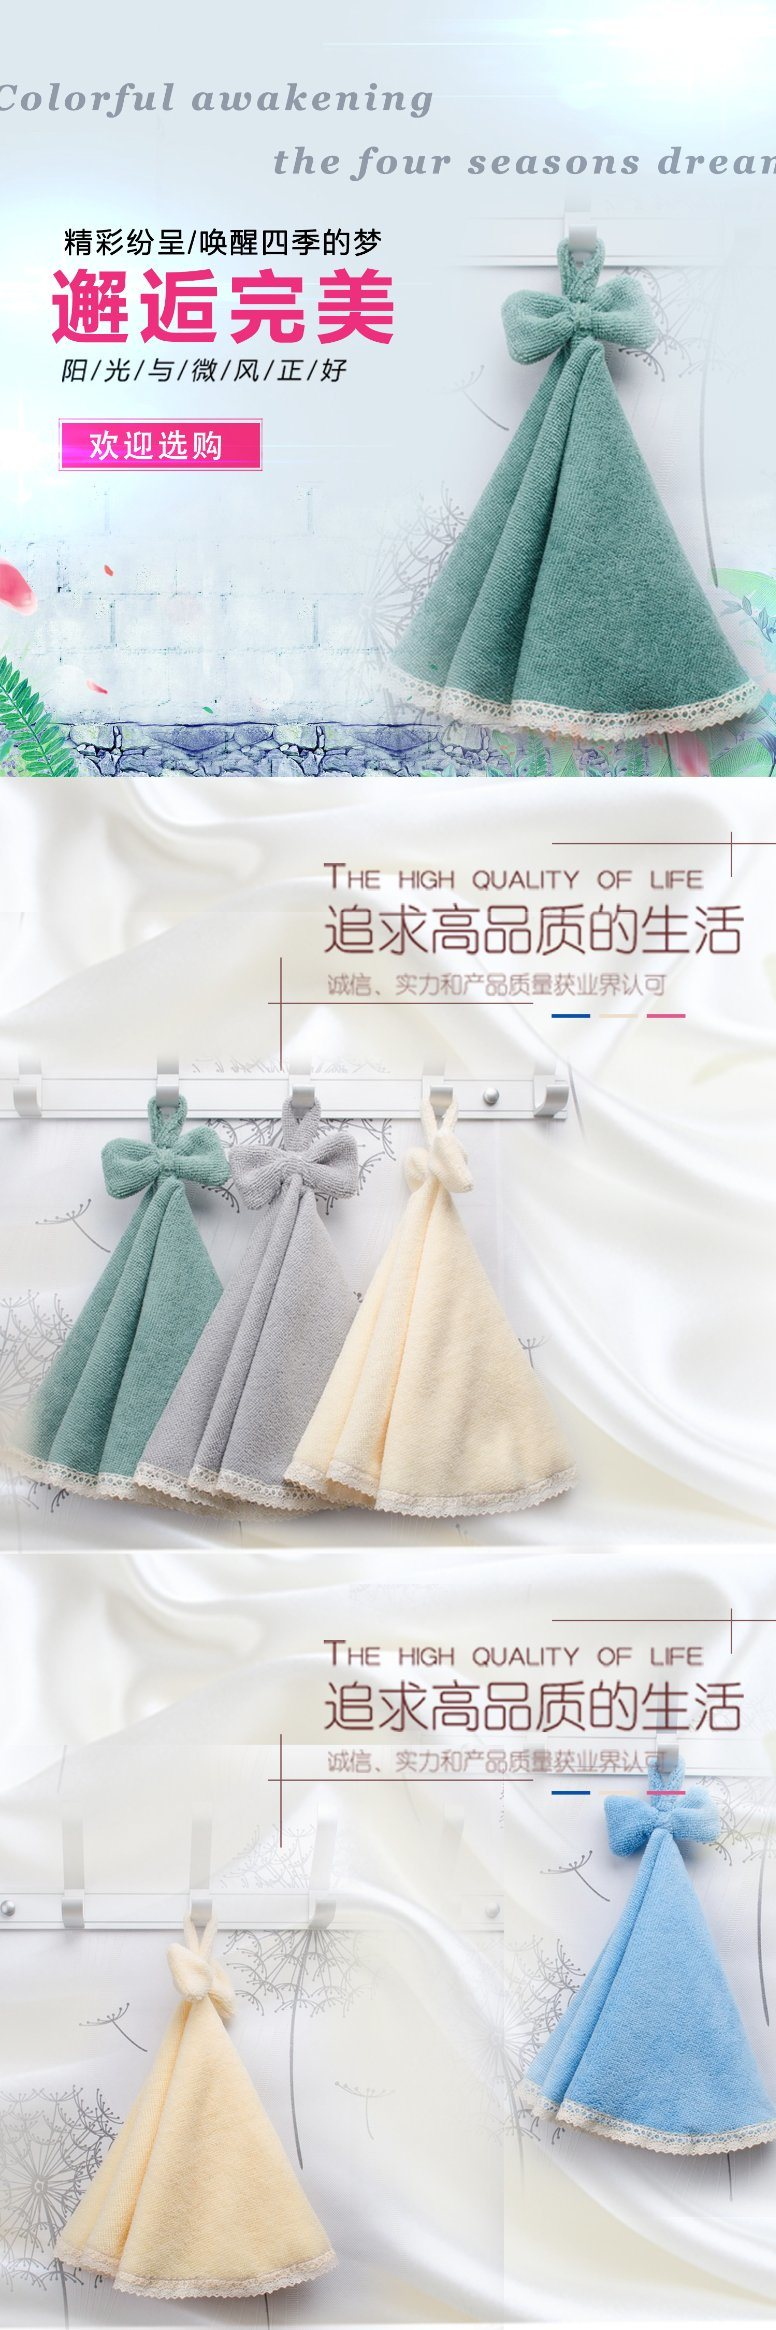 High Quality Low Price Ultra Soft Towel Main The Brazil Market